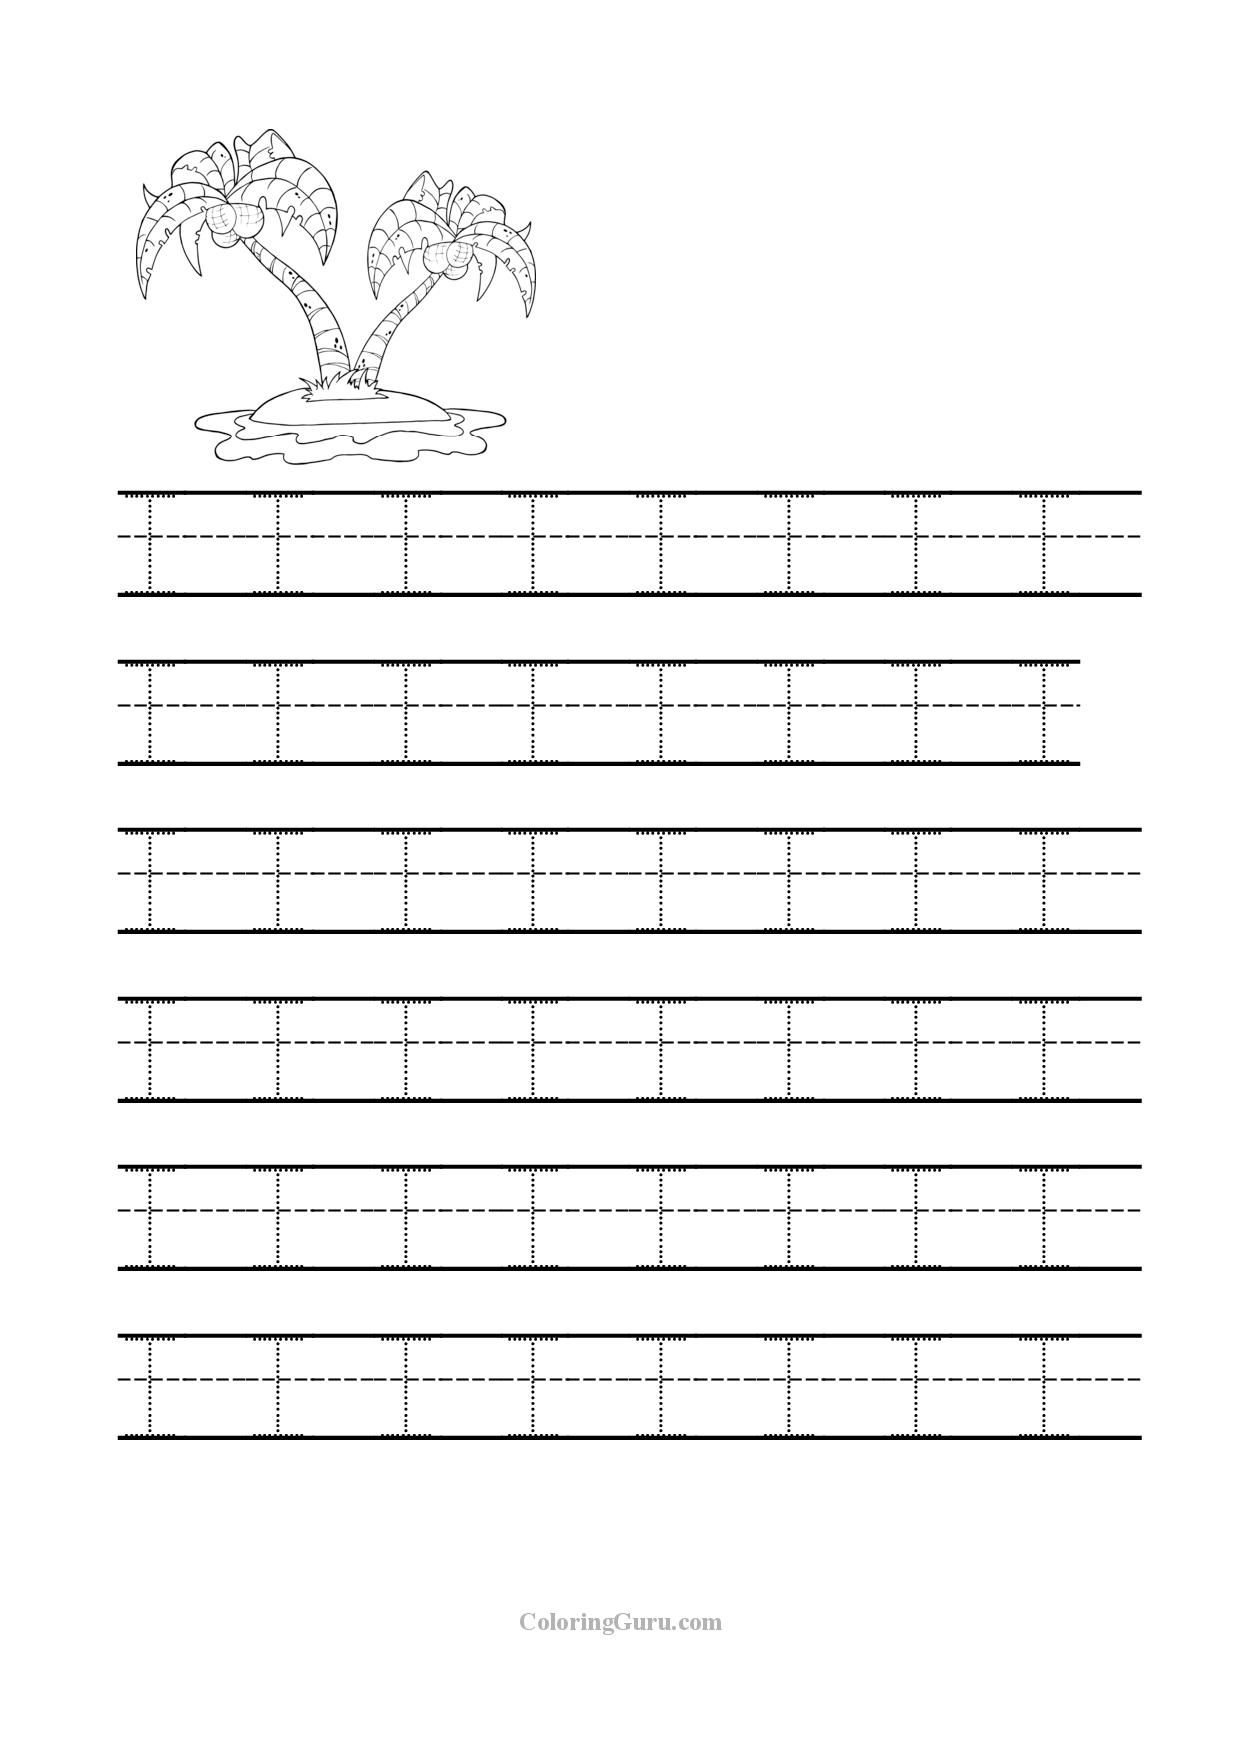 worksheet Letter I Worksheets For Preschool free printable tracing letter i worksheets for preschool preschool